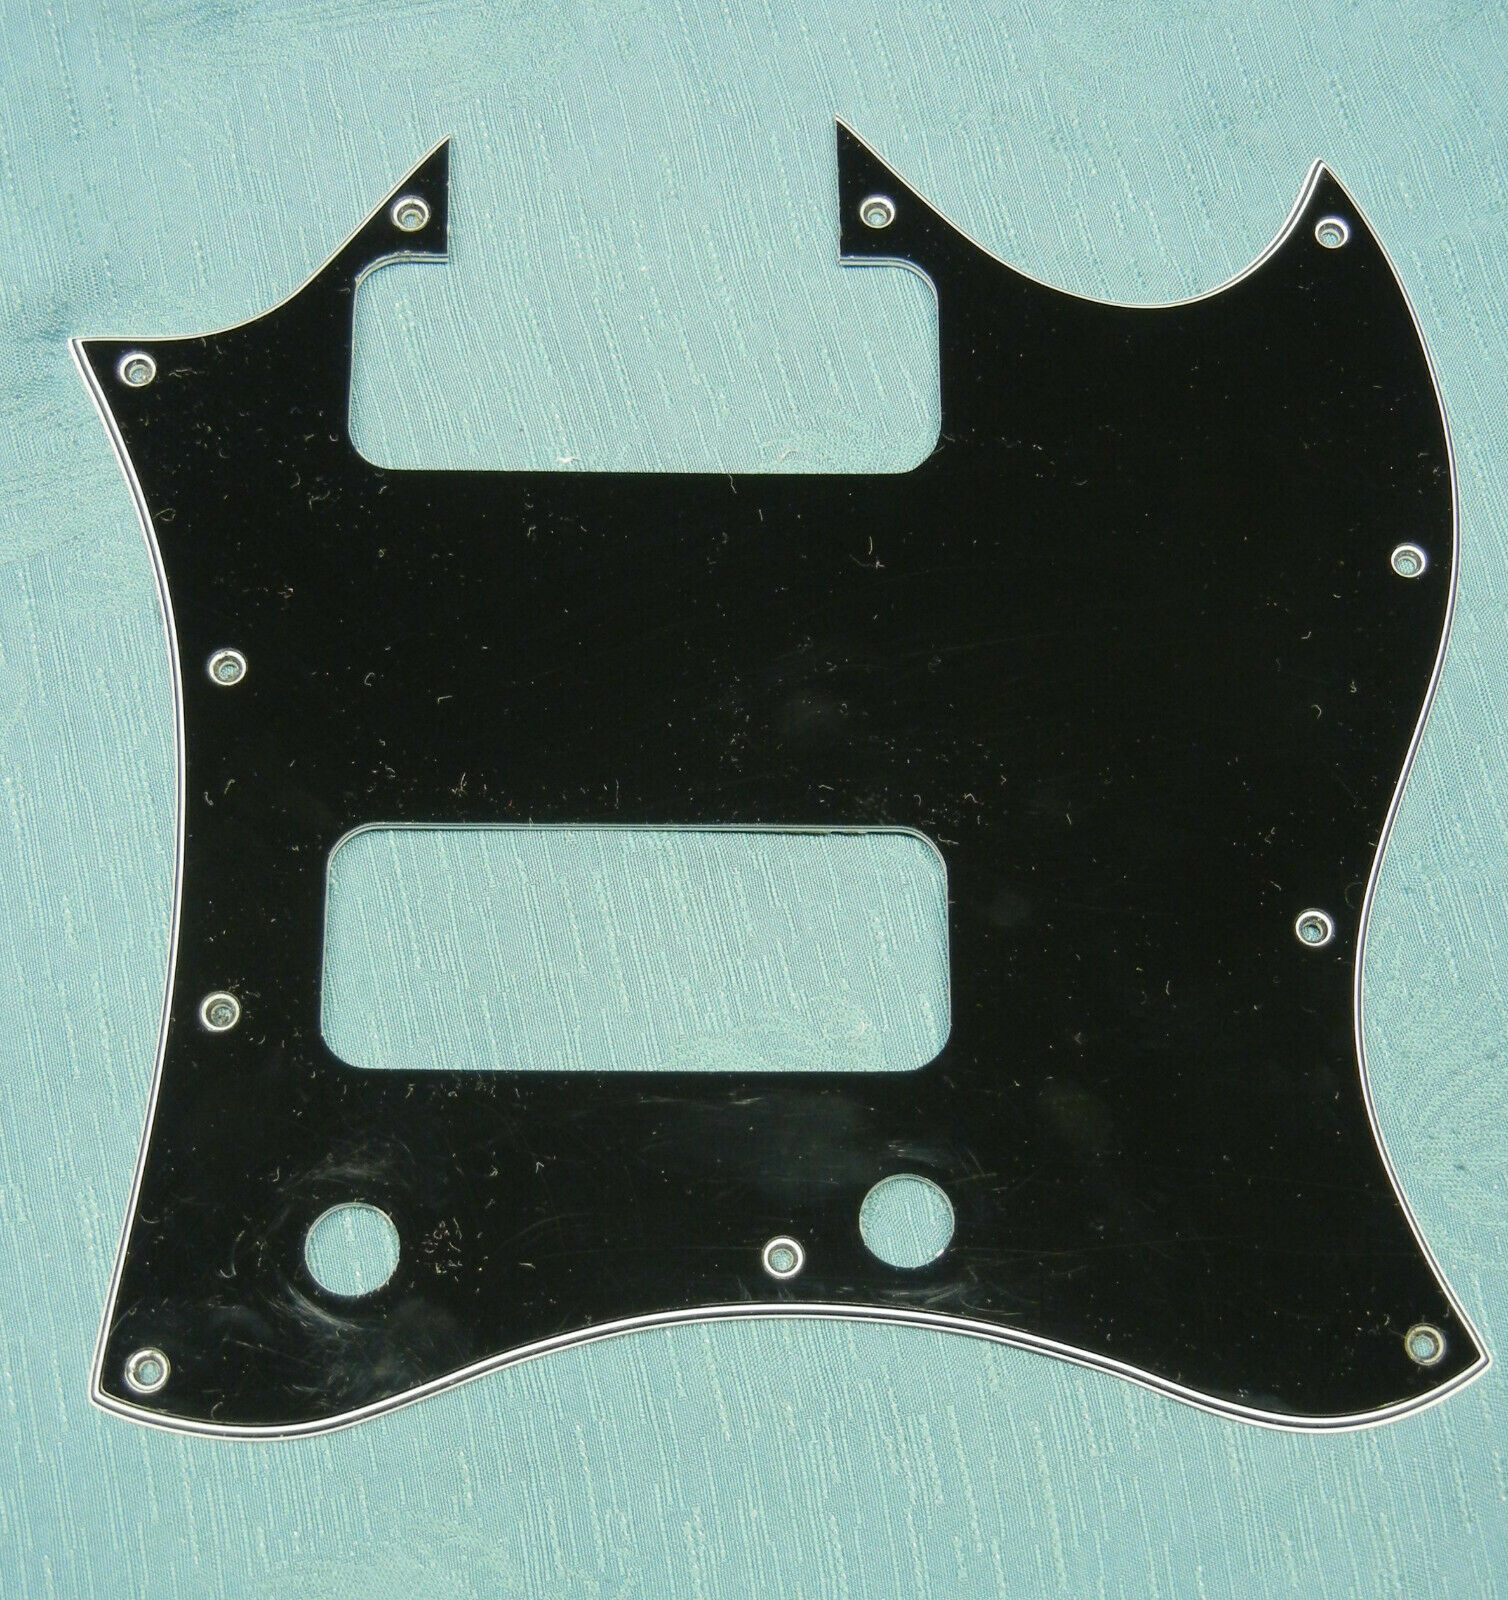 Full  Batwing  Pickguard for Gibson 50s Tribute SG with P-90 soapbar pickups